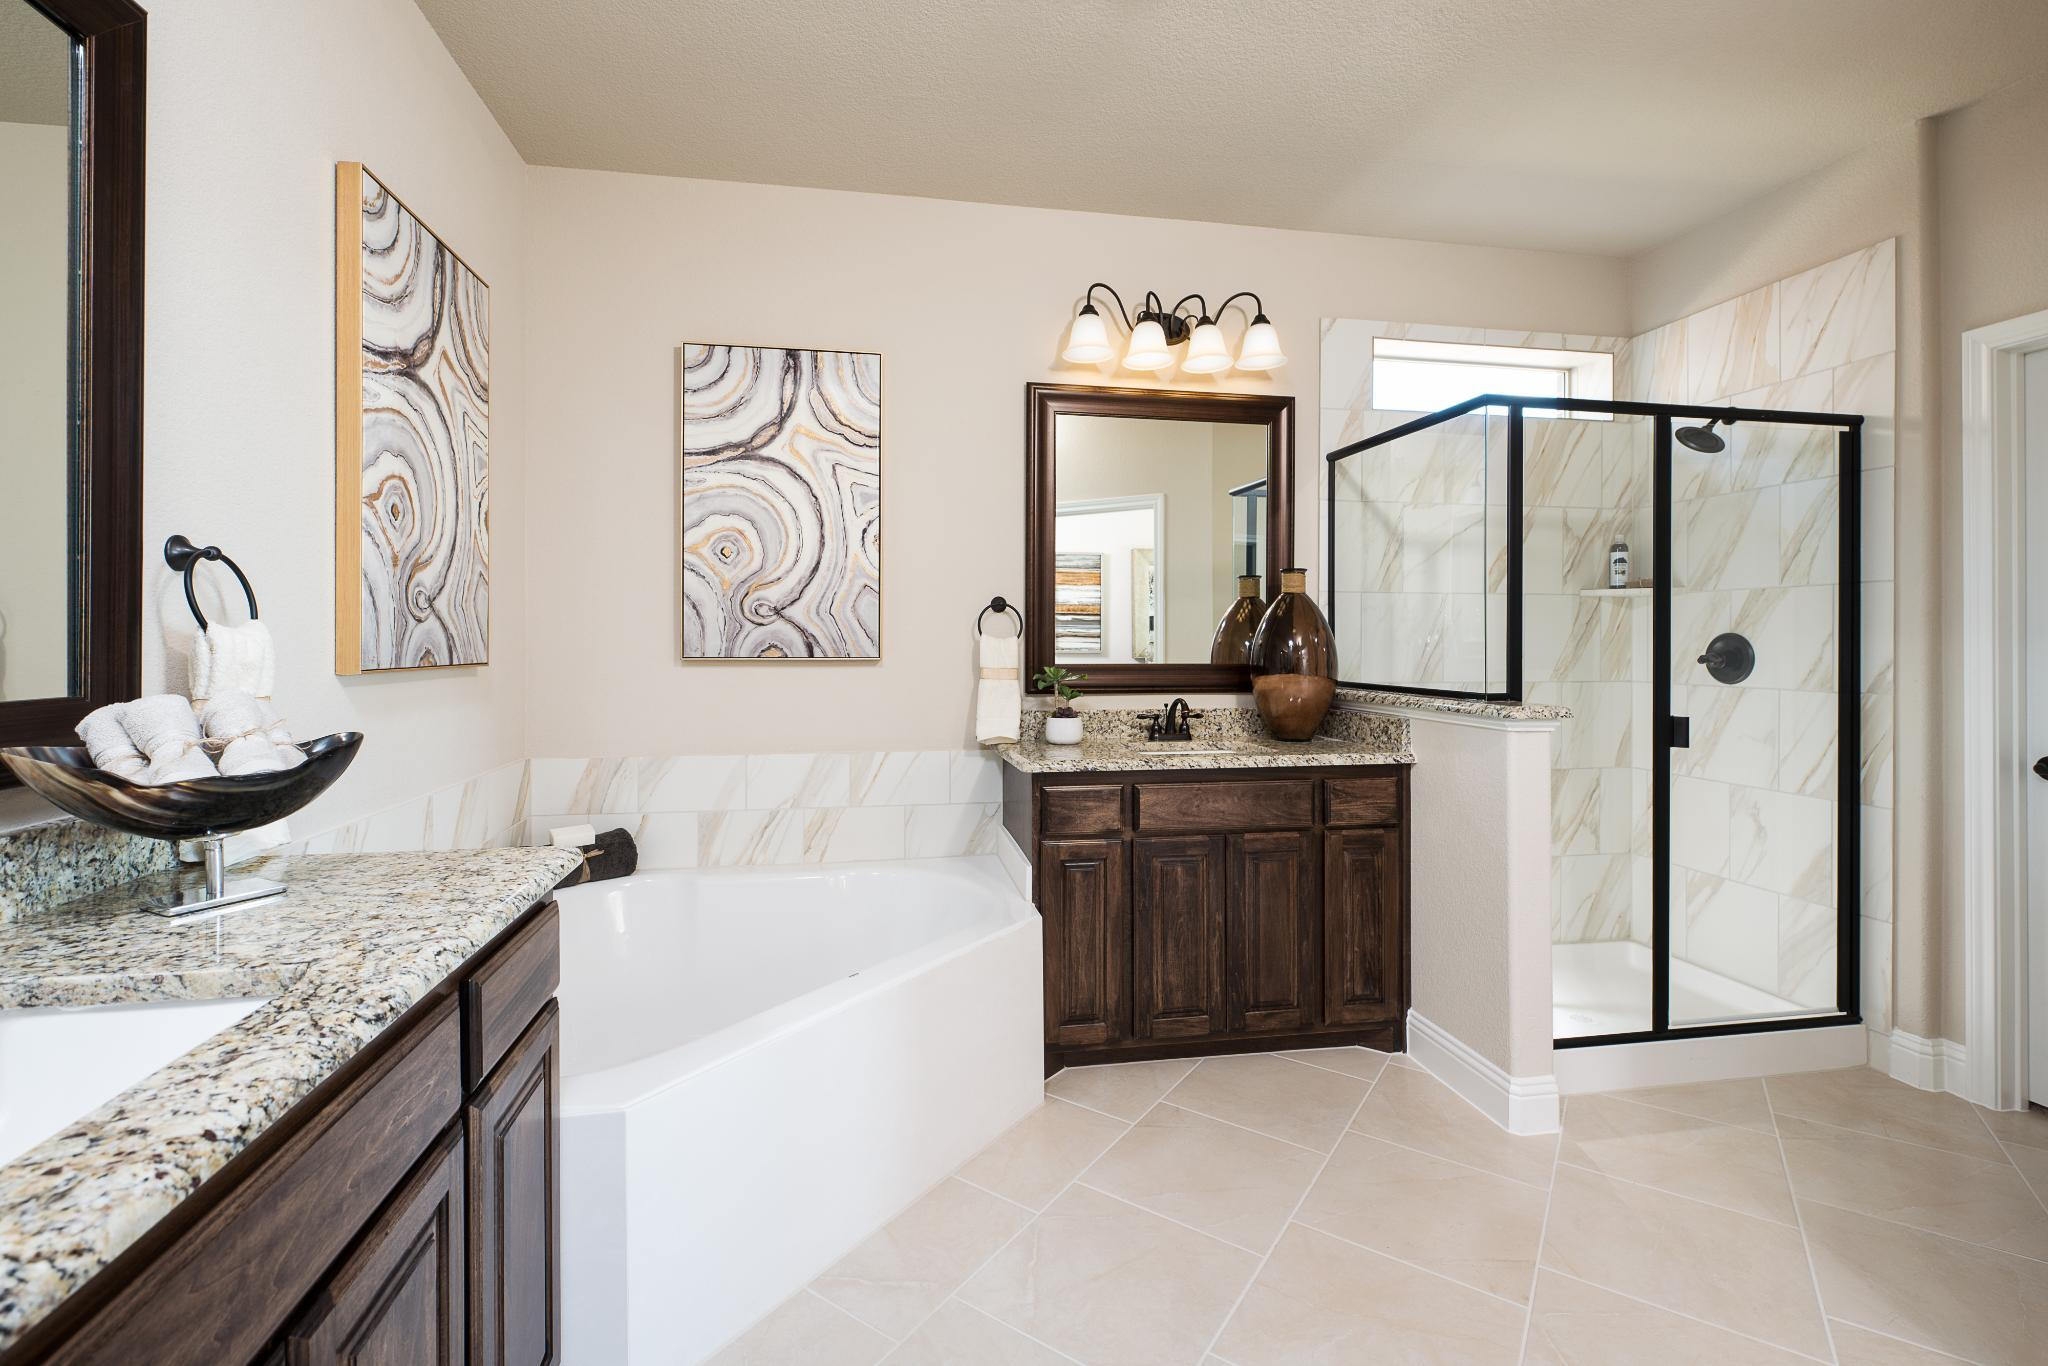 Bathroom featured in the 3135 By Antares Homes in Fort Worth, TX